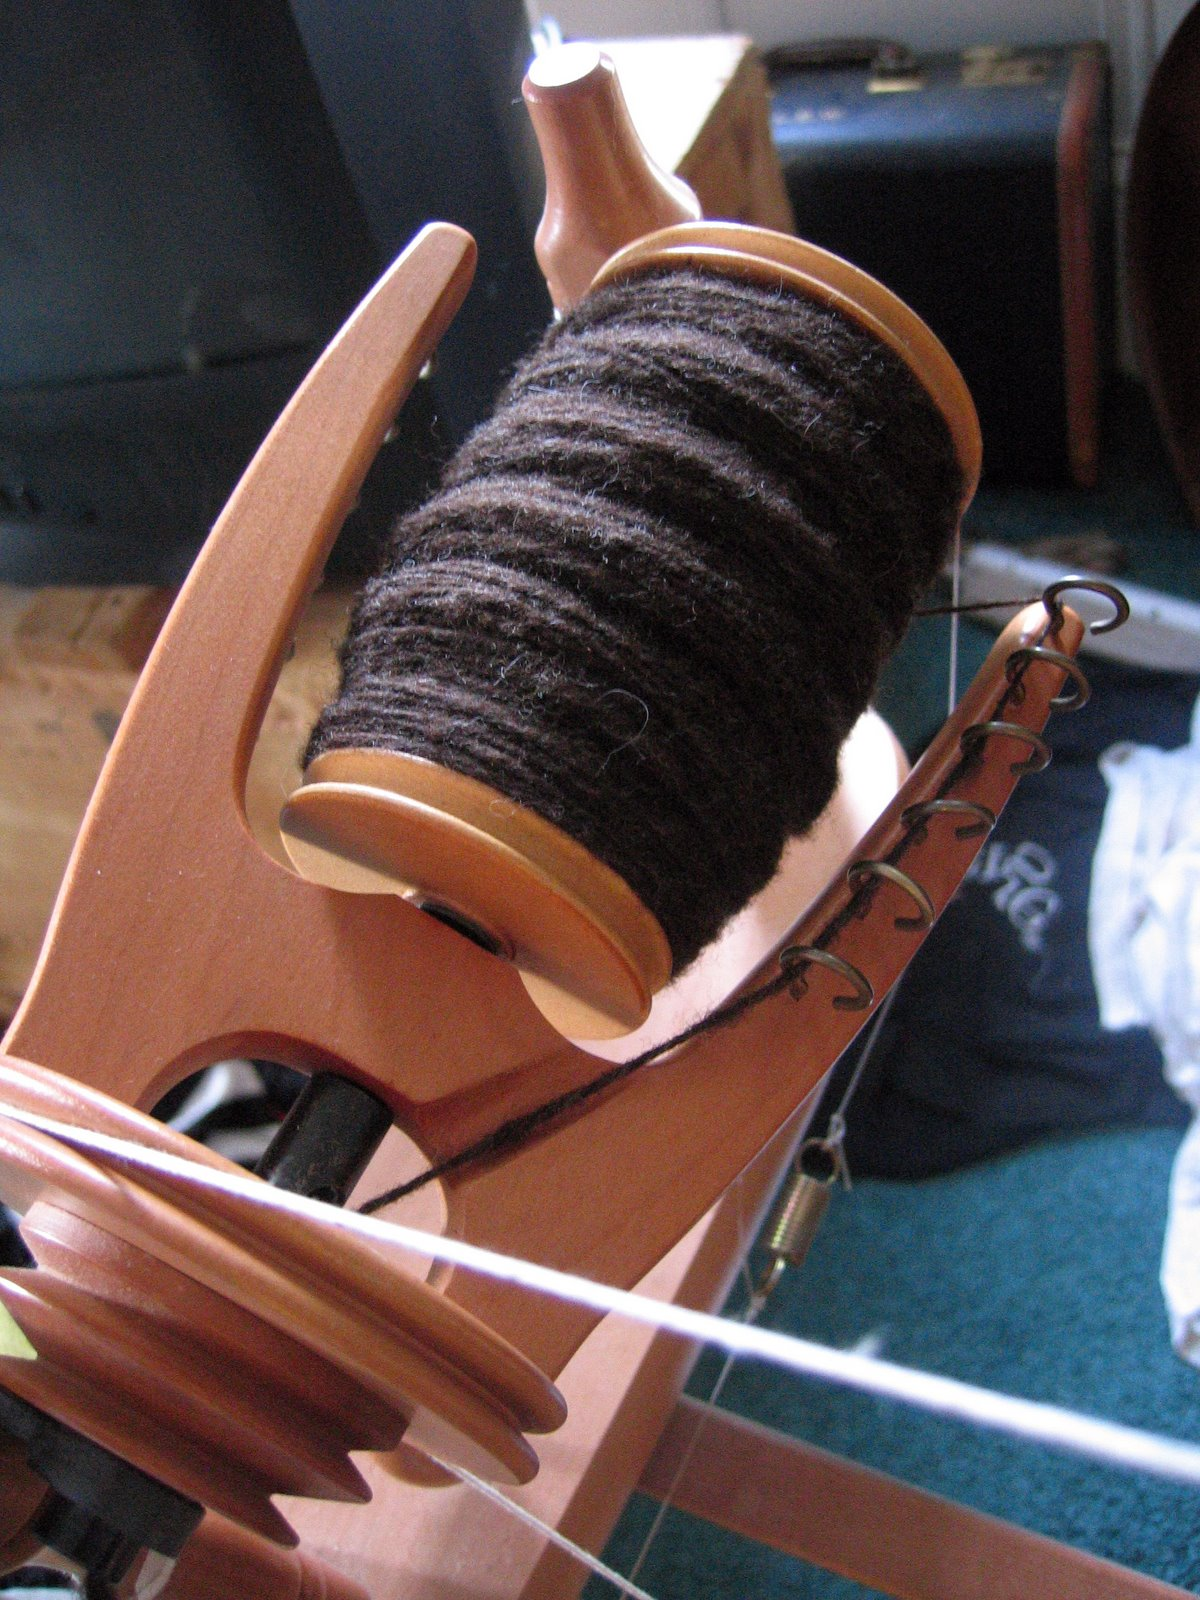 [Spinning+unknown+brown+wool+from+Australia]